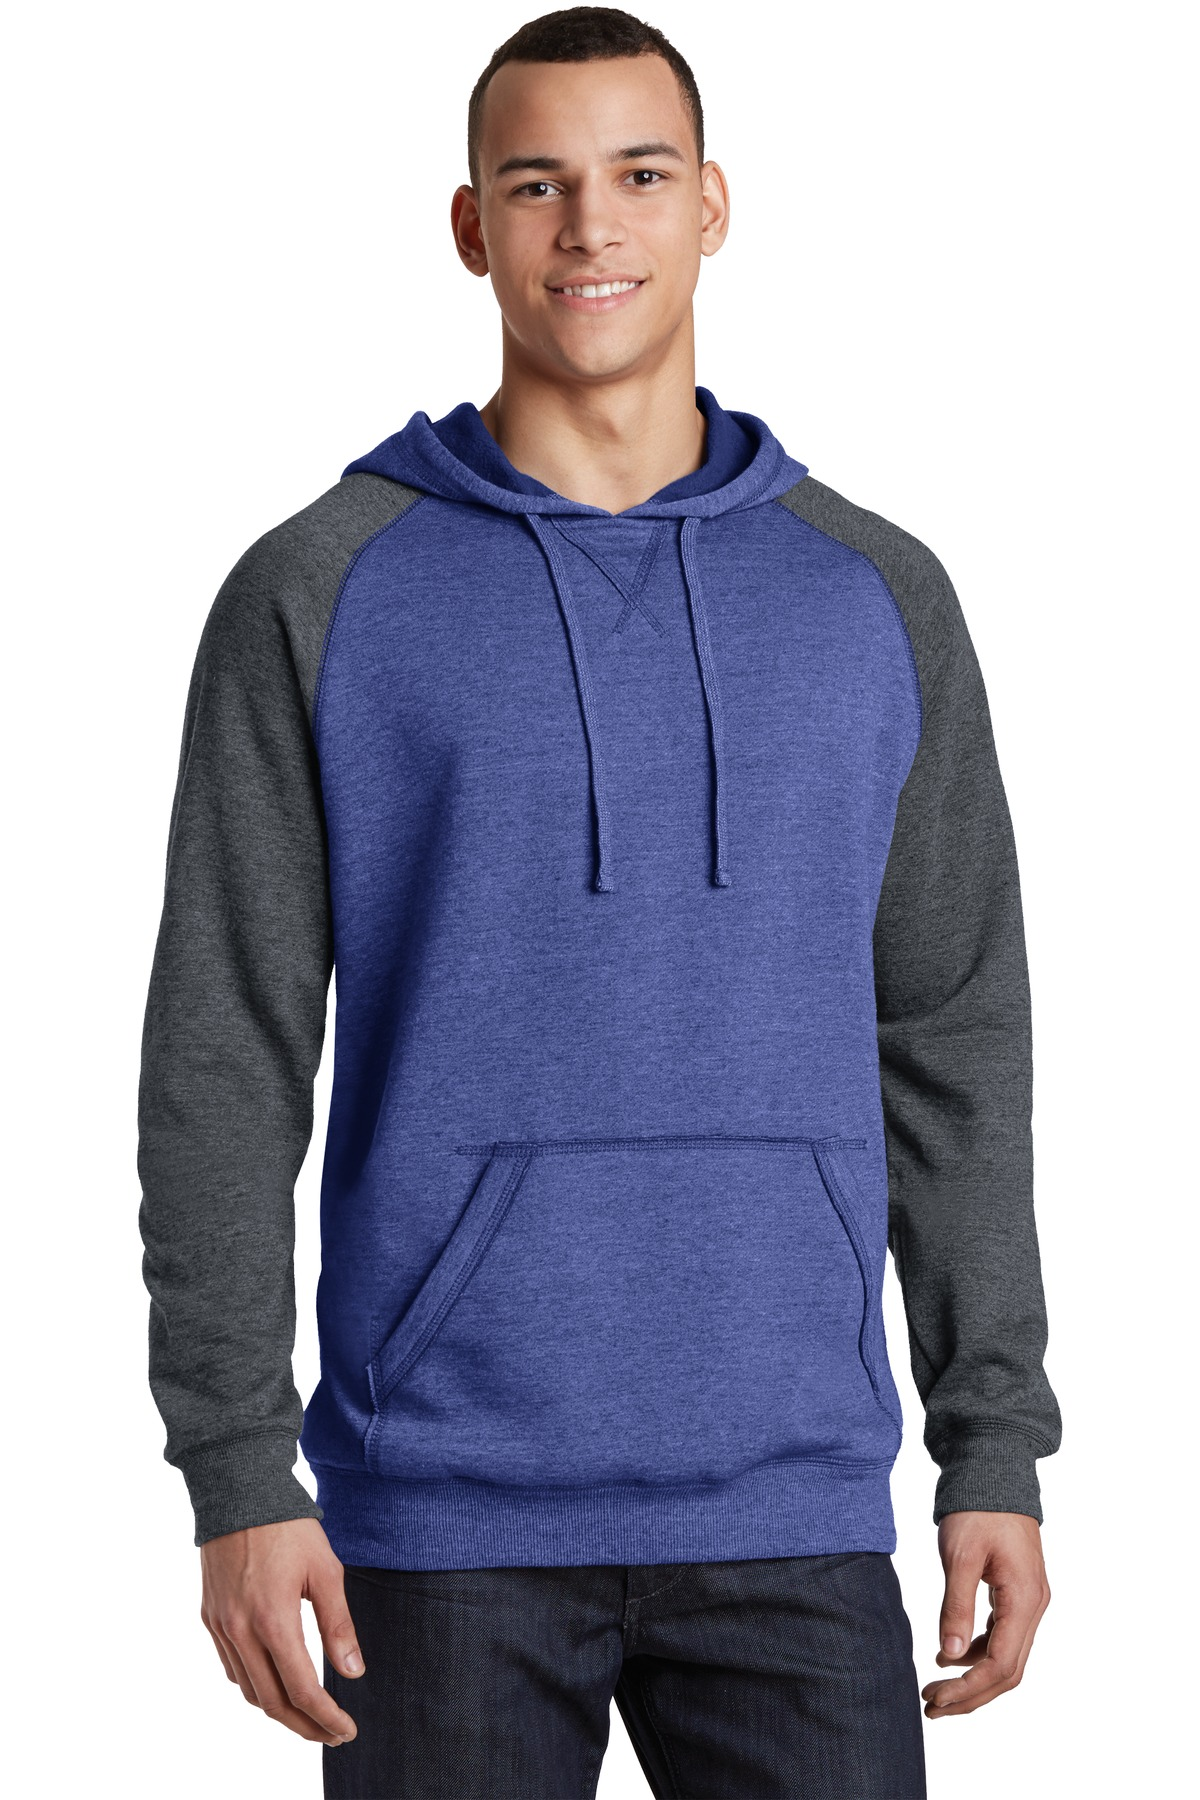 District  DT196 - Young Mens Lightweight Fleece Raglan ...